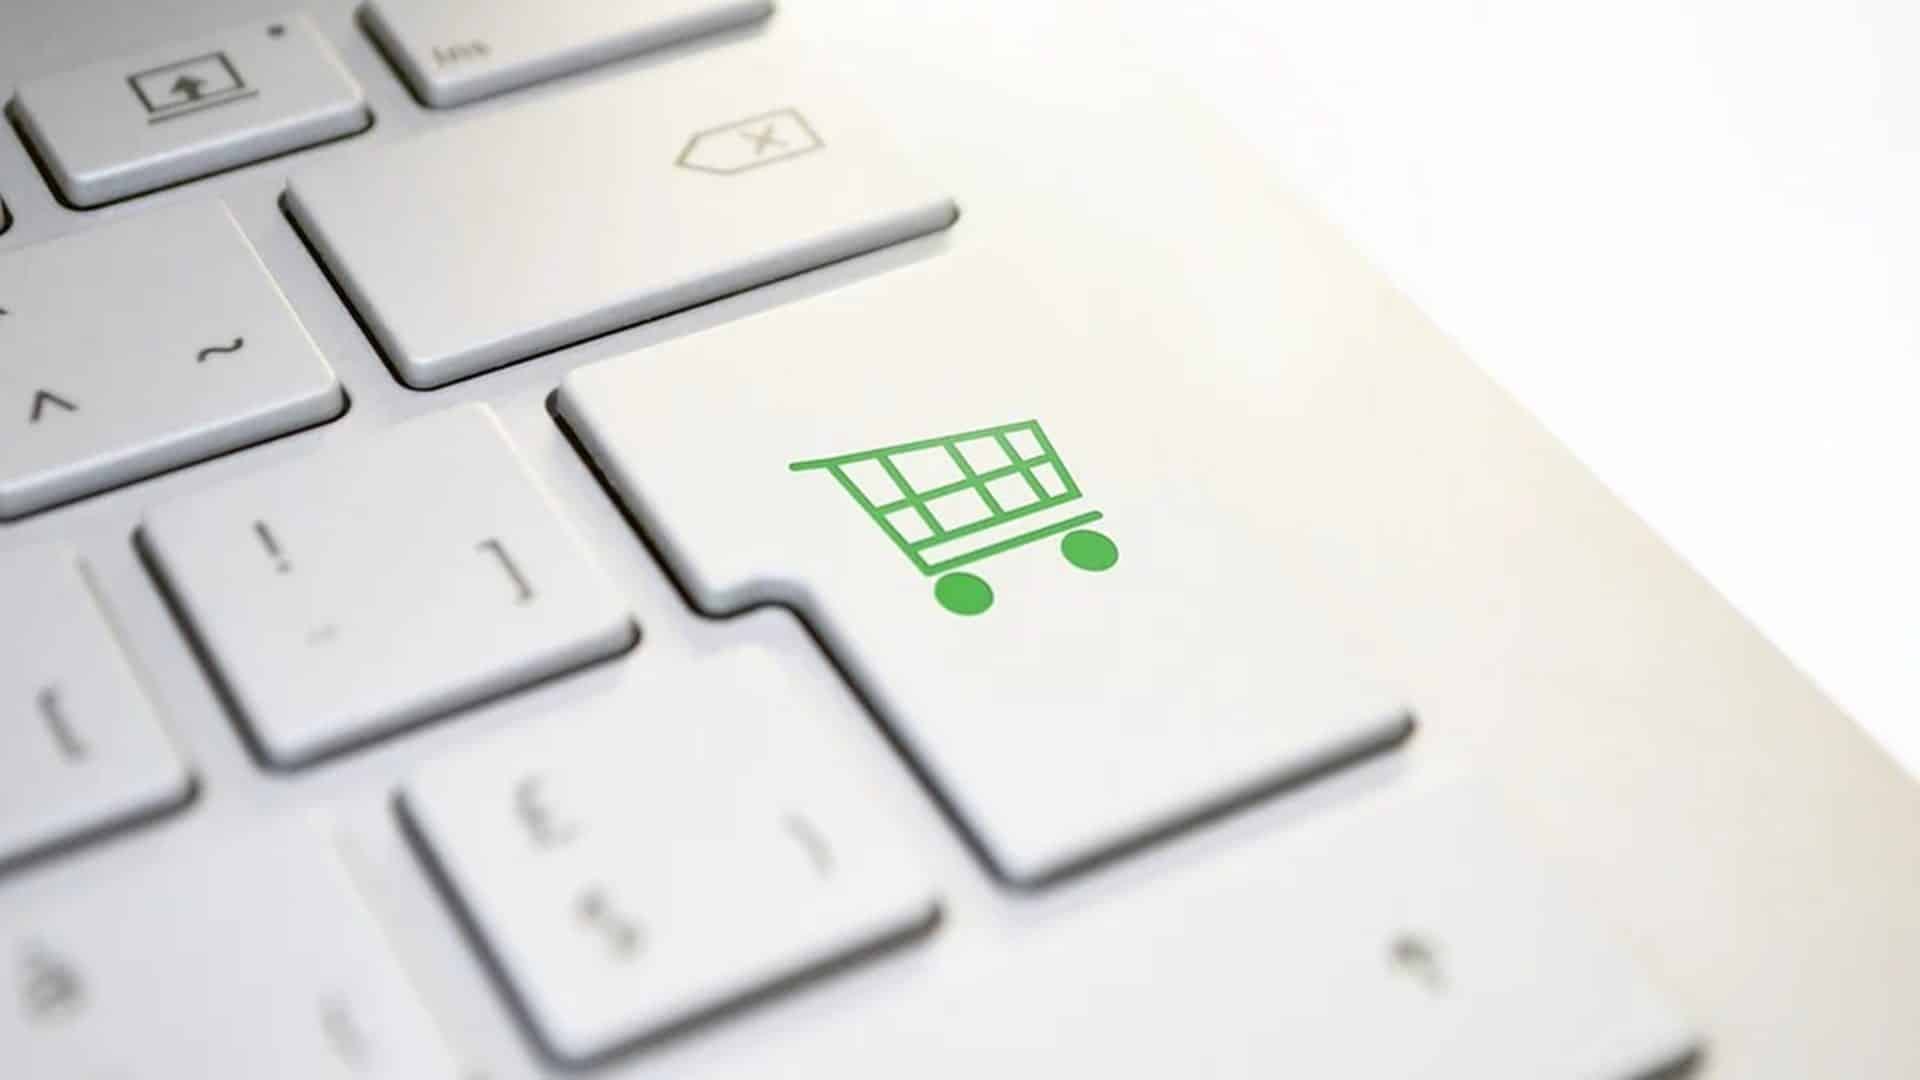 US top lobby group worried over India's proposed e-commerce plan: Report